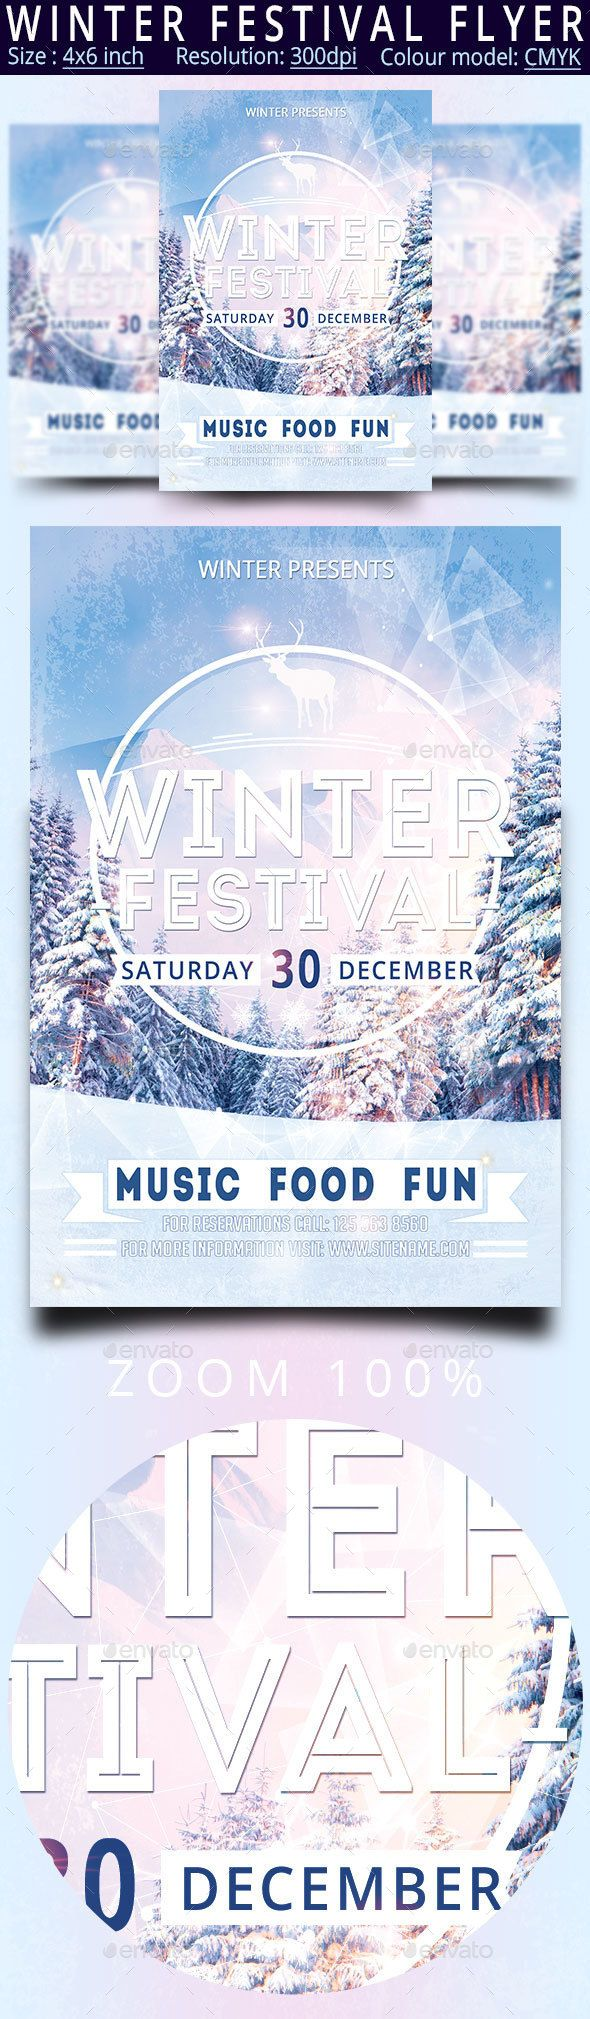 Winter Festival Flyer Template PSD #design Download: http://graphicriver.net/item/winter-festival-flyer/13645668?ref=ksioks